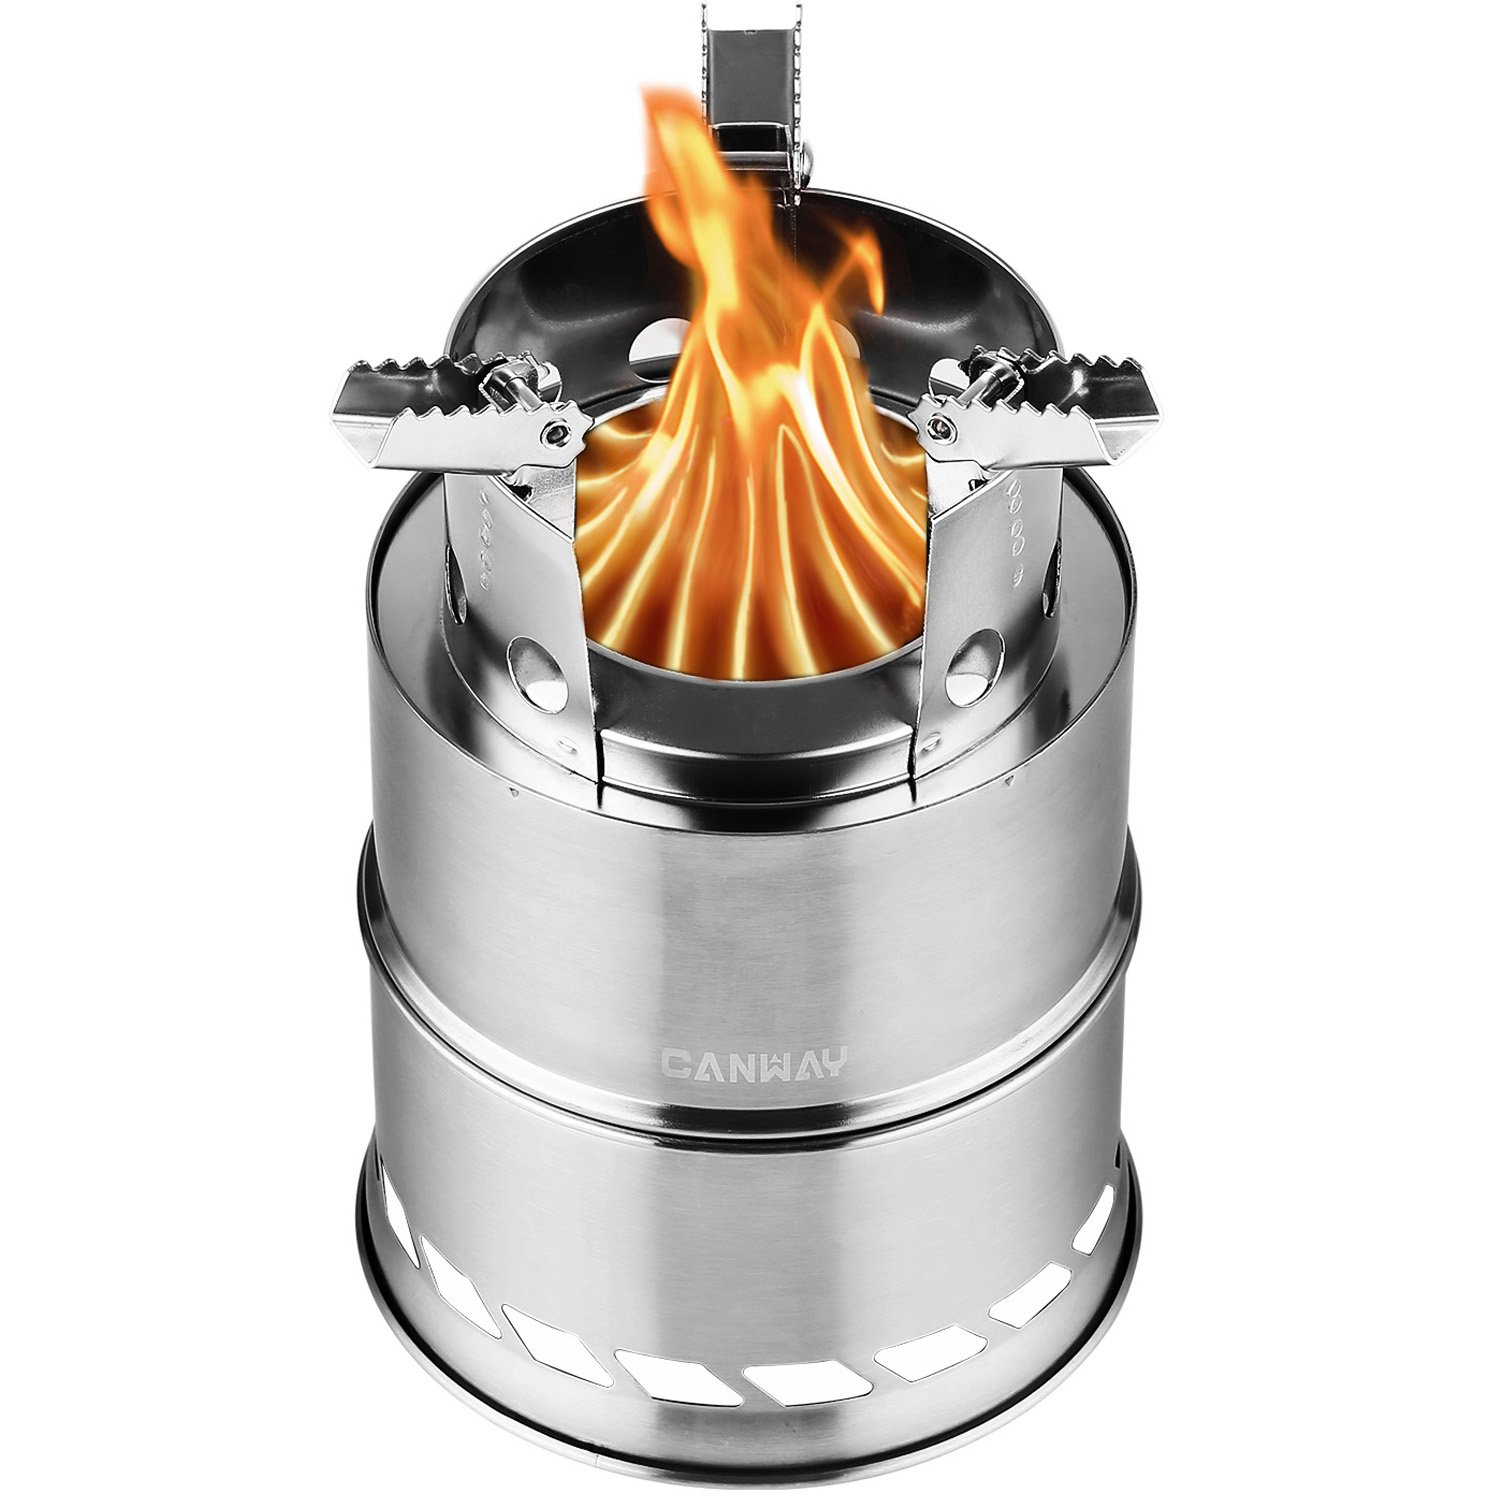 CANWAY Camping Stove, Wood Stove/Backpacking Stove,Portable Stainless Steel Wood Burning Stove with Nylon Carry Bag for Outdoor Backpacking Hiking Traveling Picnic BBQ by CANWAY